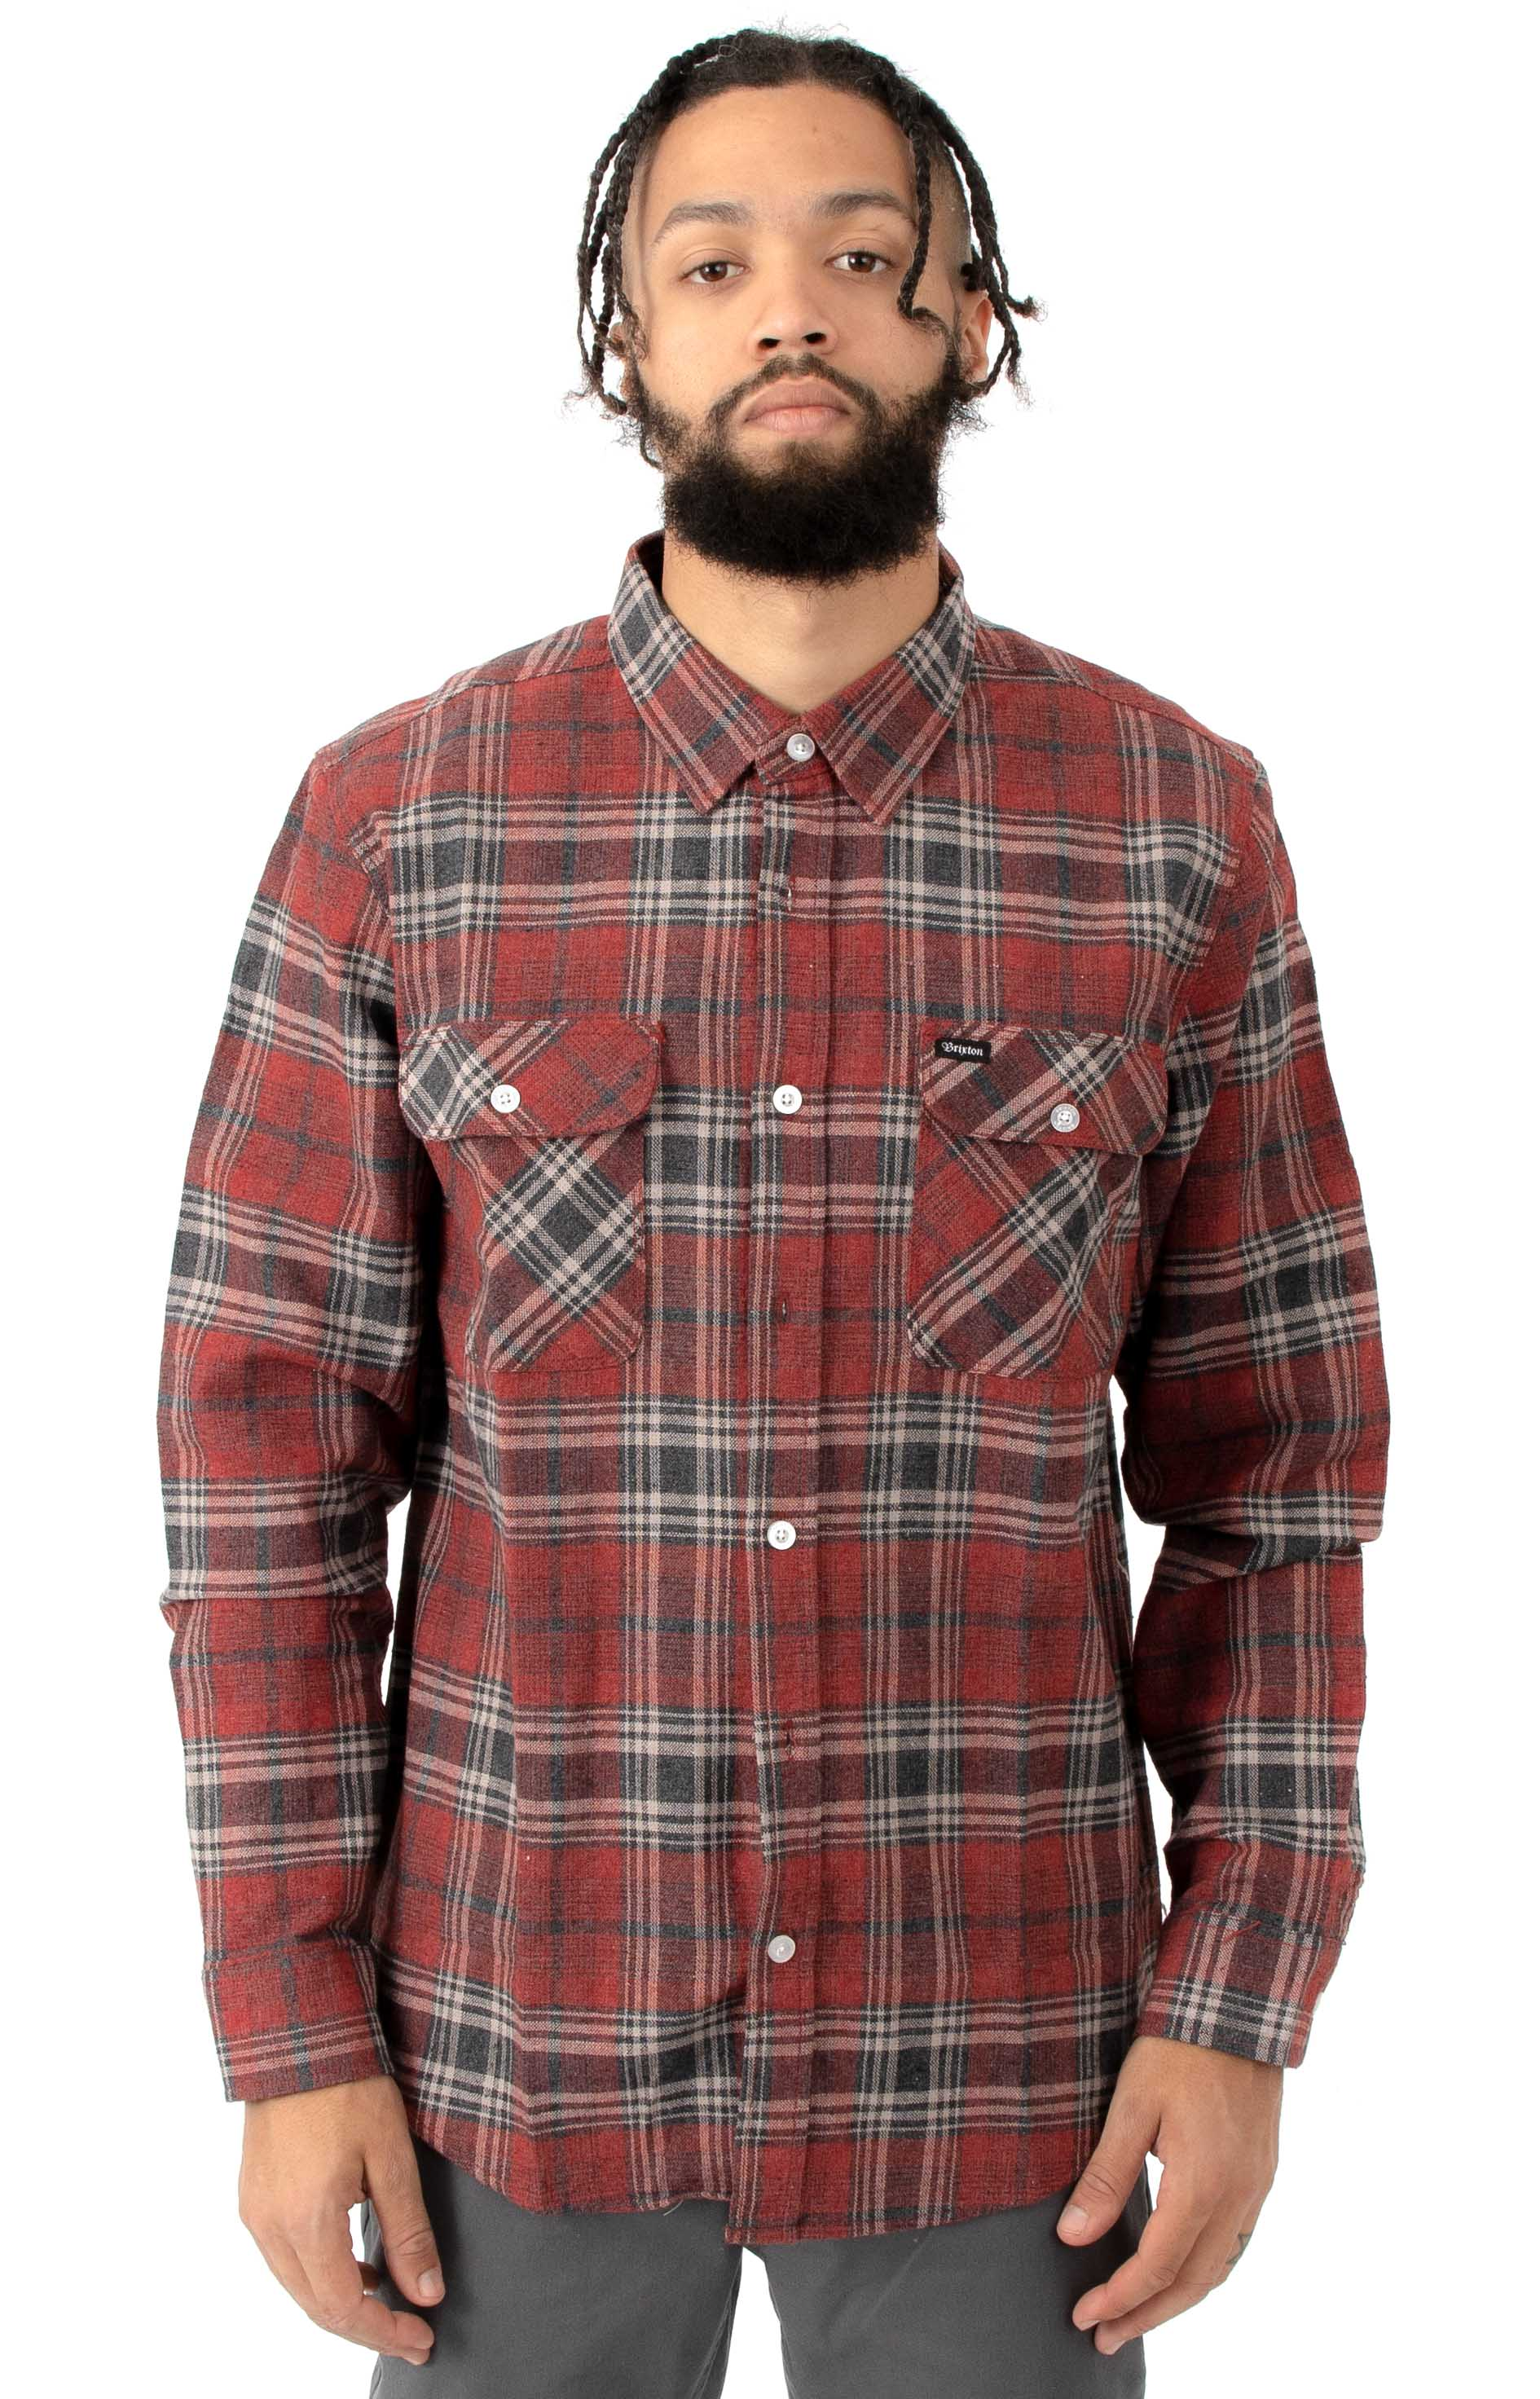 Bowery L/S Button-Up Shirt - Brick/Steel